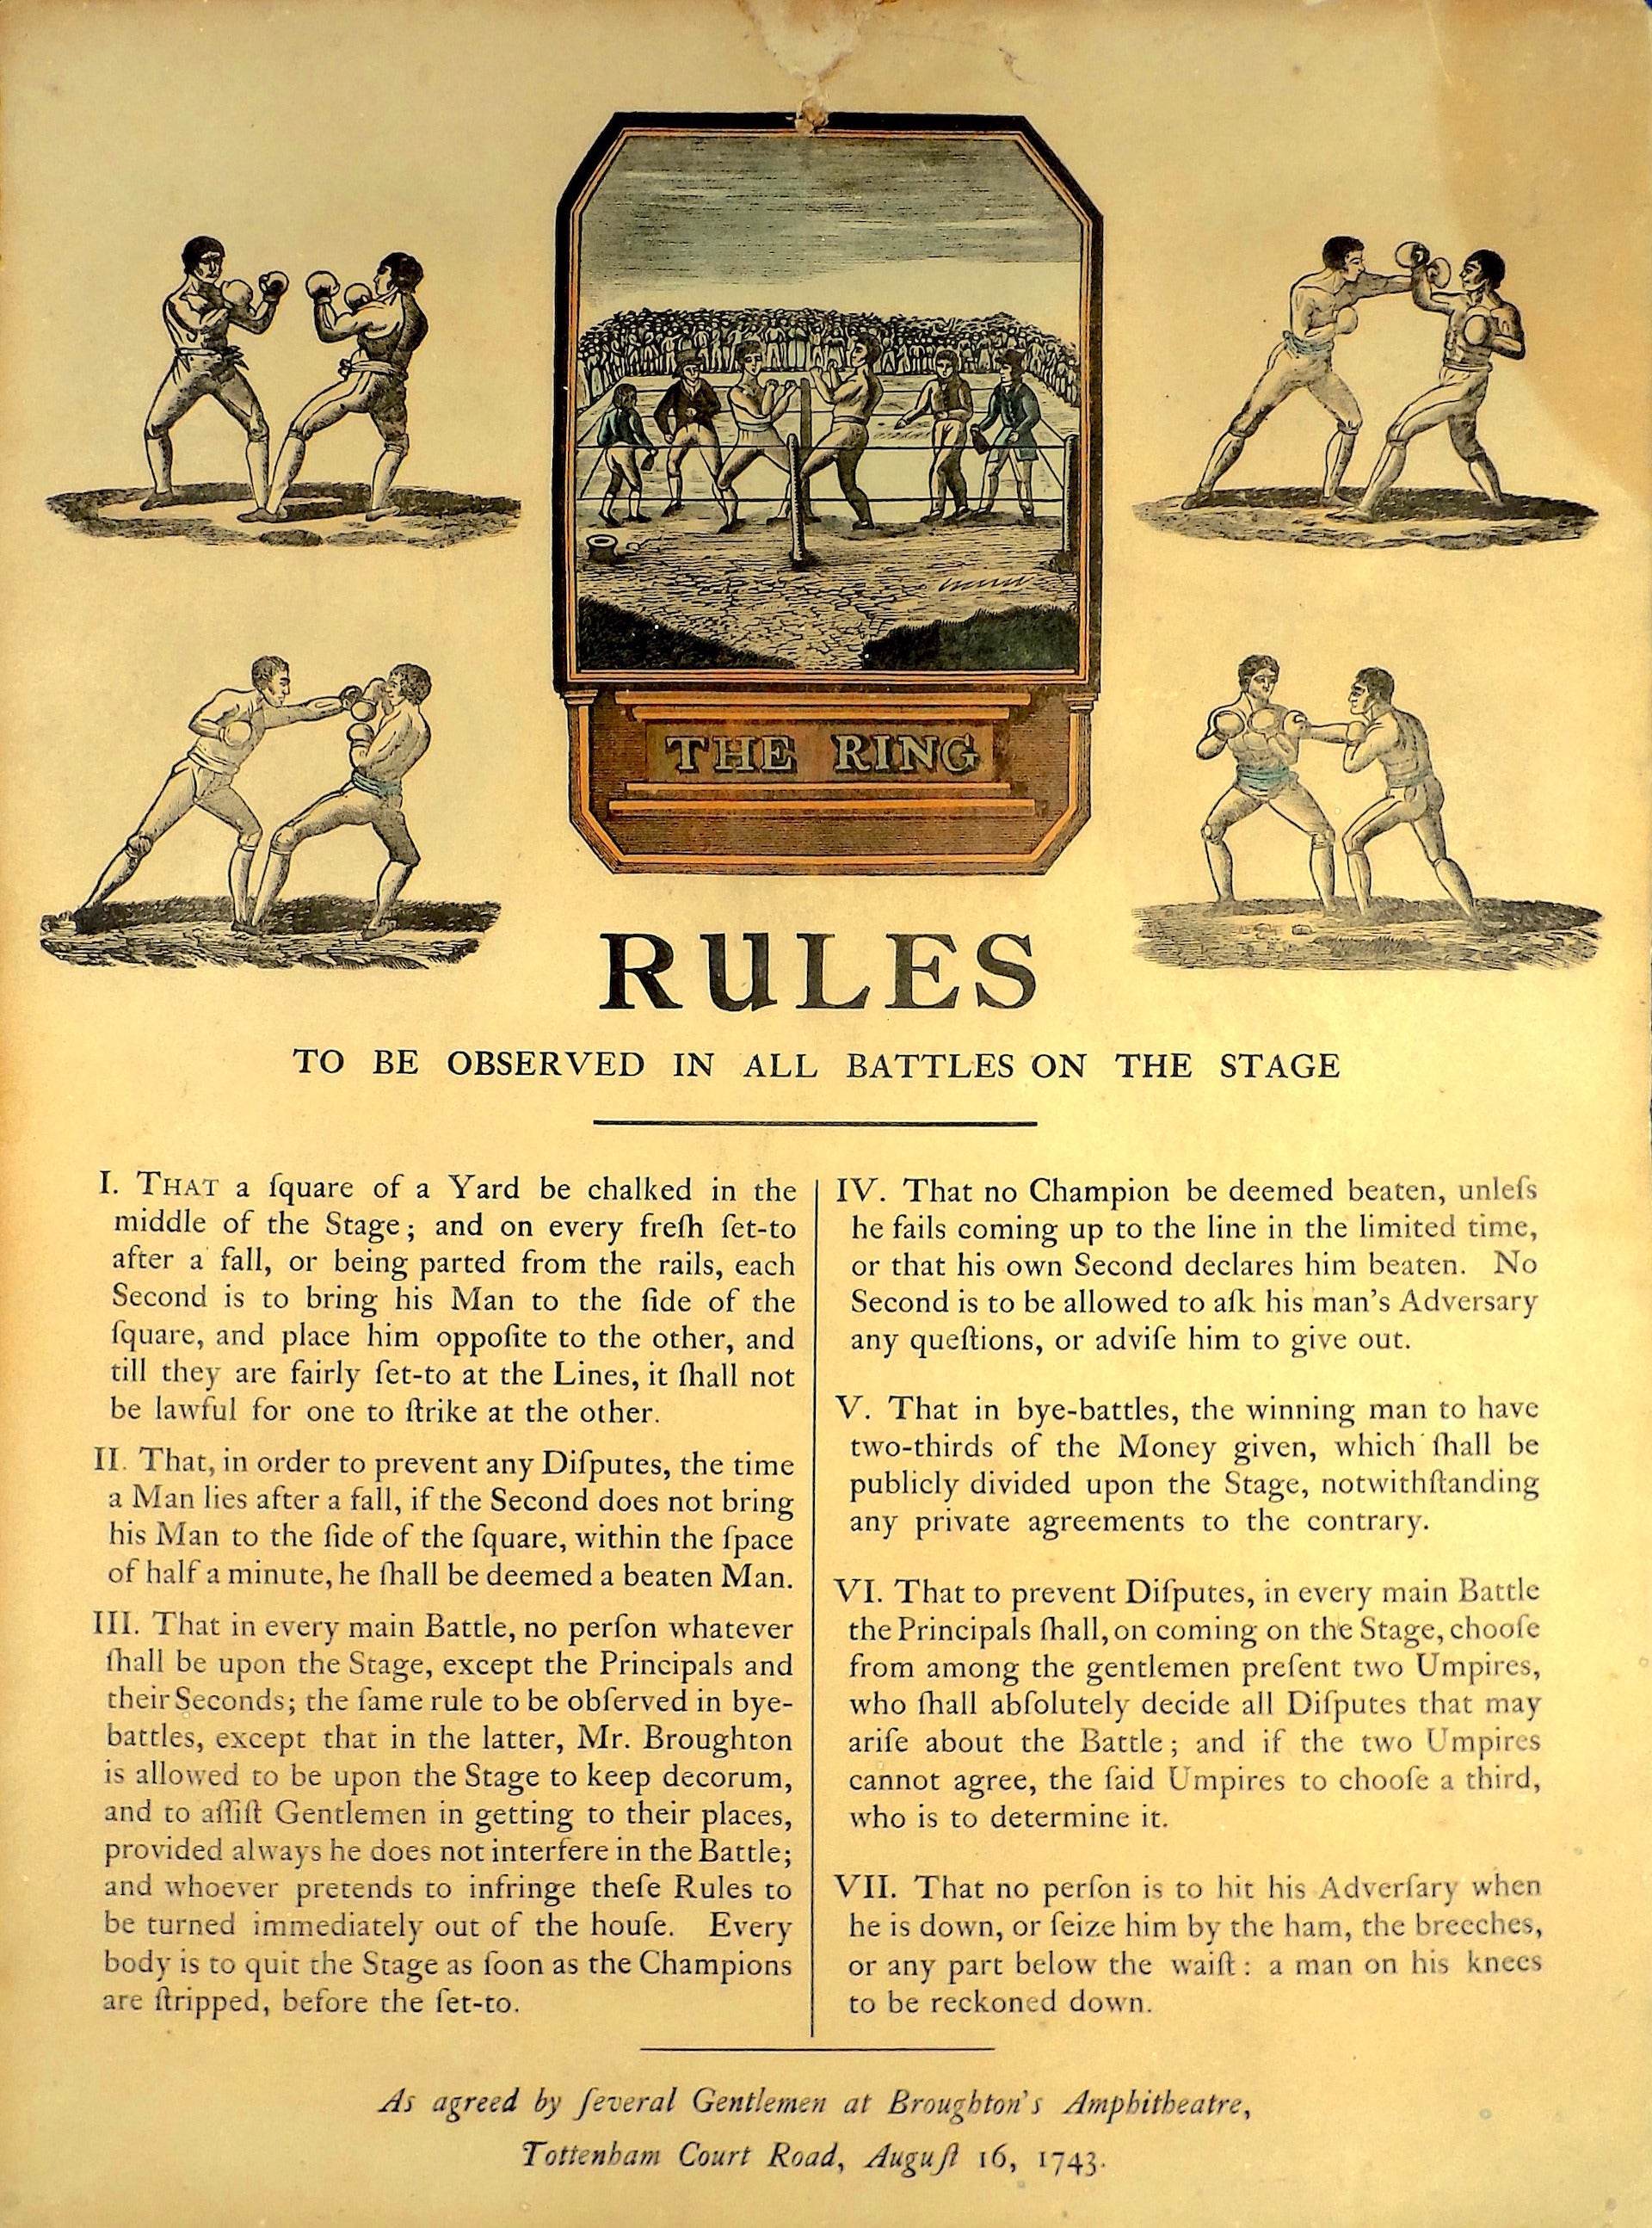 The first boxing rules, called the Broughton's rules, were introduced by English champion bare knuckle fighter Jack Broughton, known as the the father of english boxing in 1743.